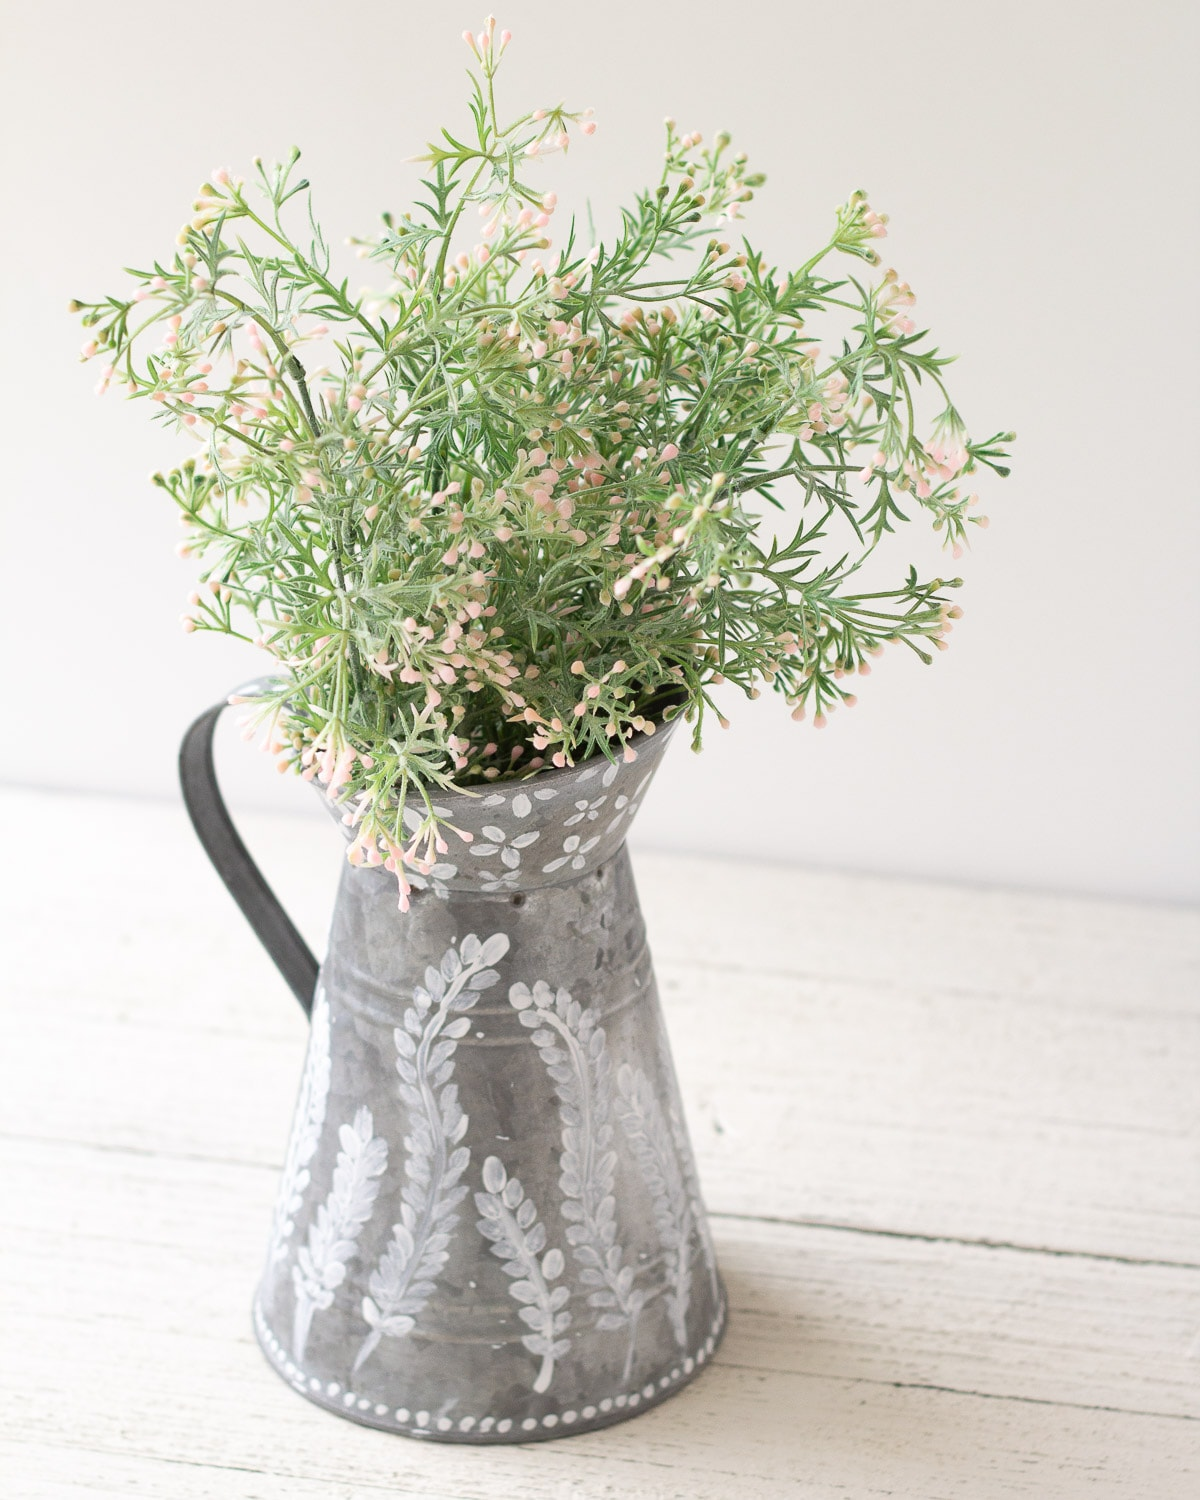 A galvanized pitcher filled with faux florals and decorated white paint floral designs.